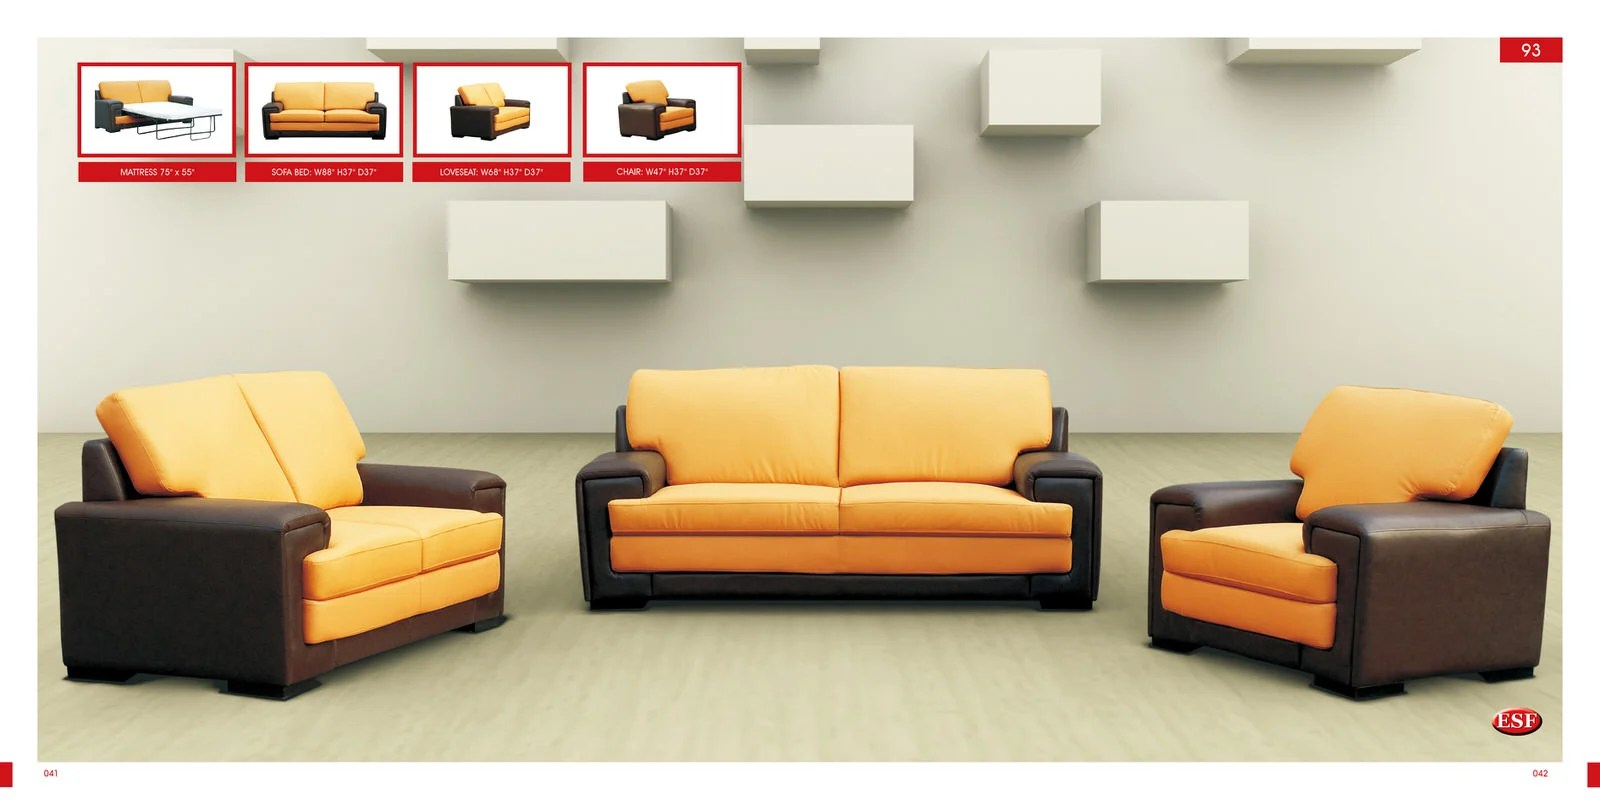 Sofa Bed 93 Yellow Leather By Esf